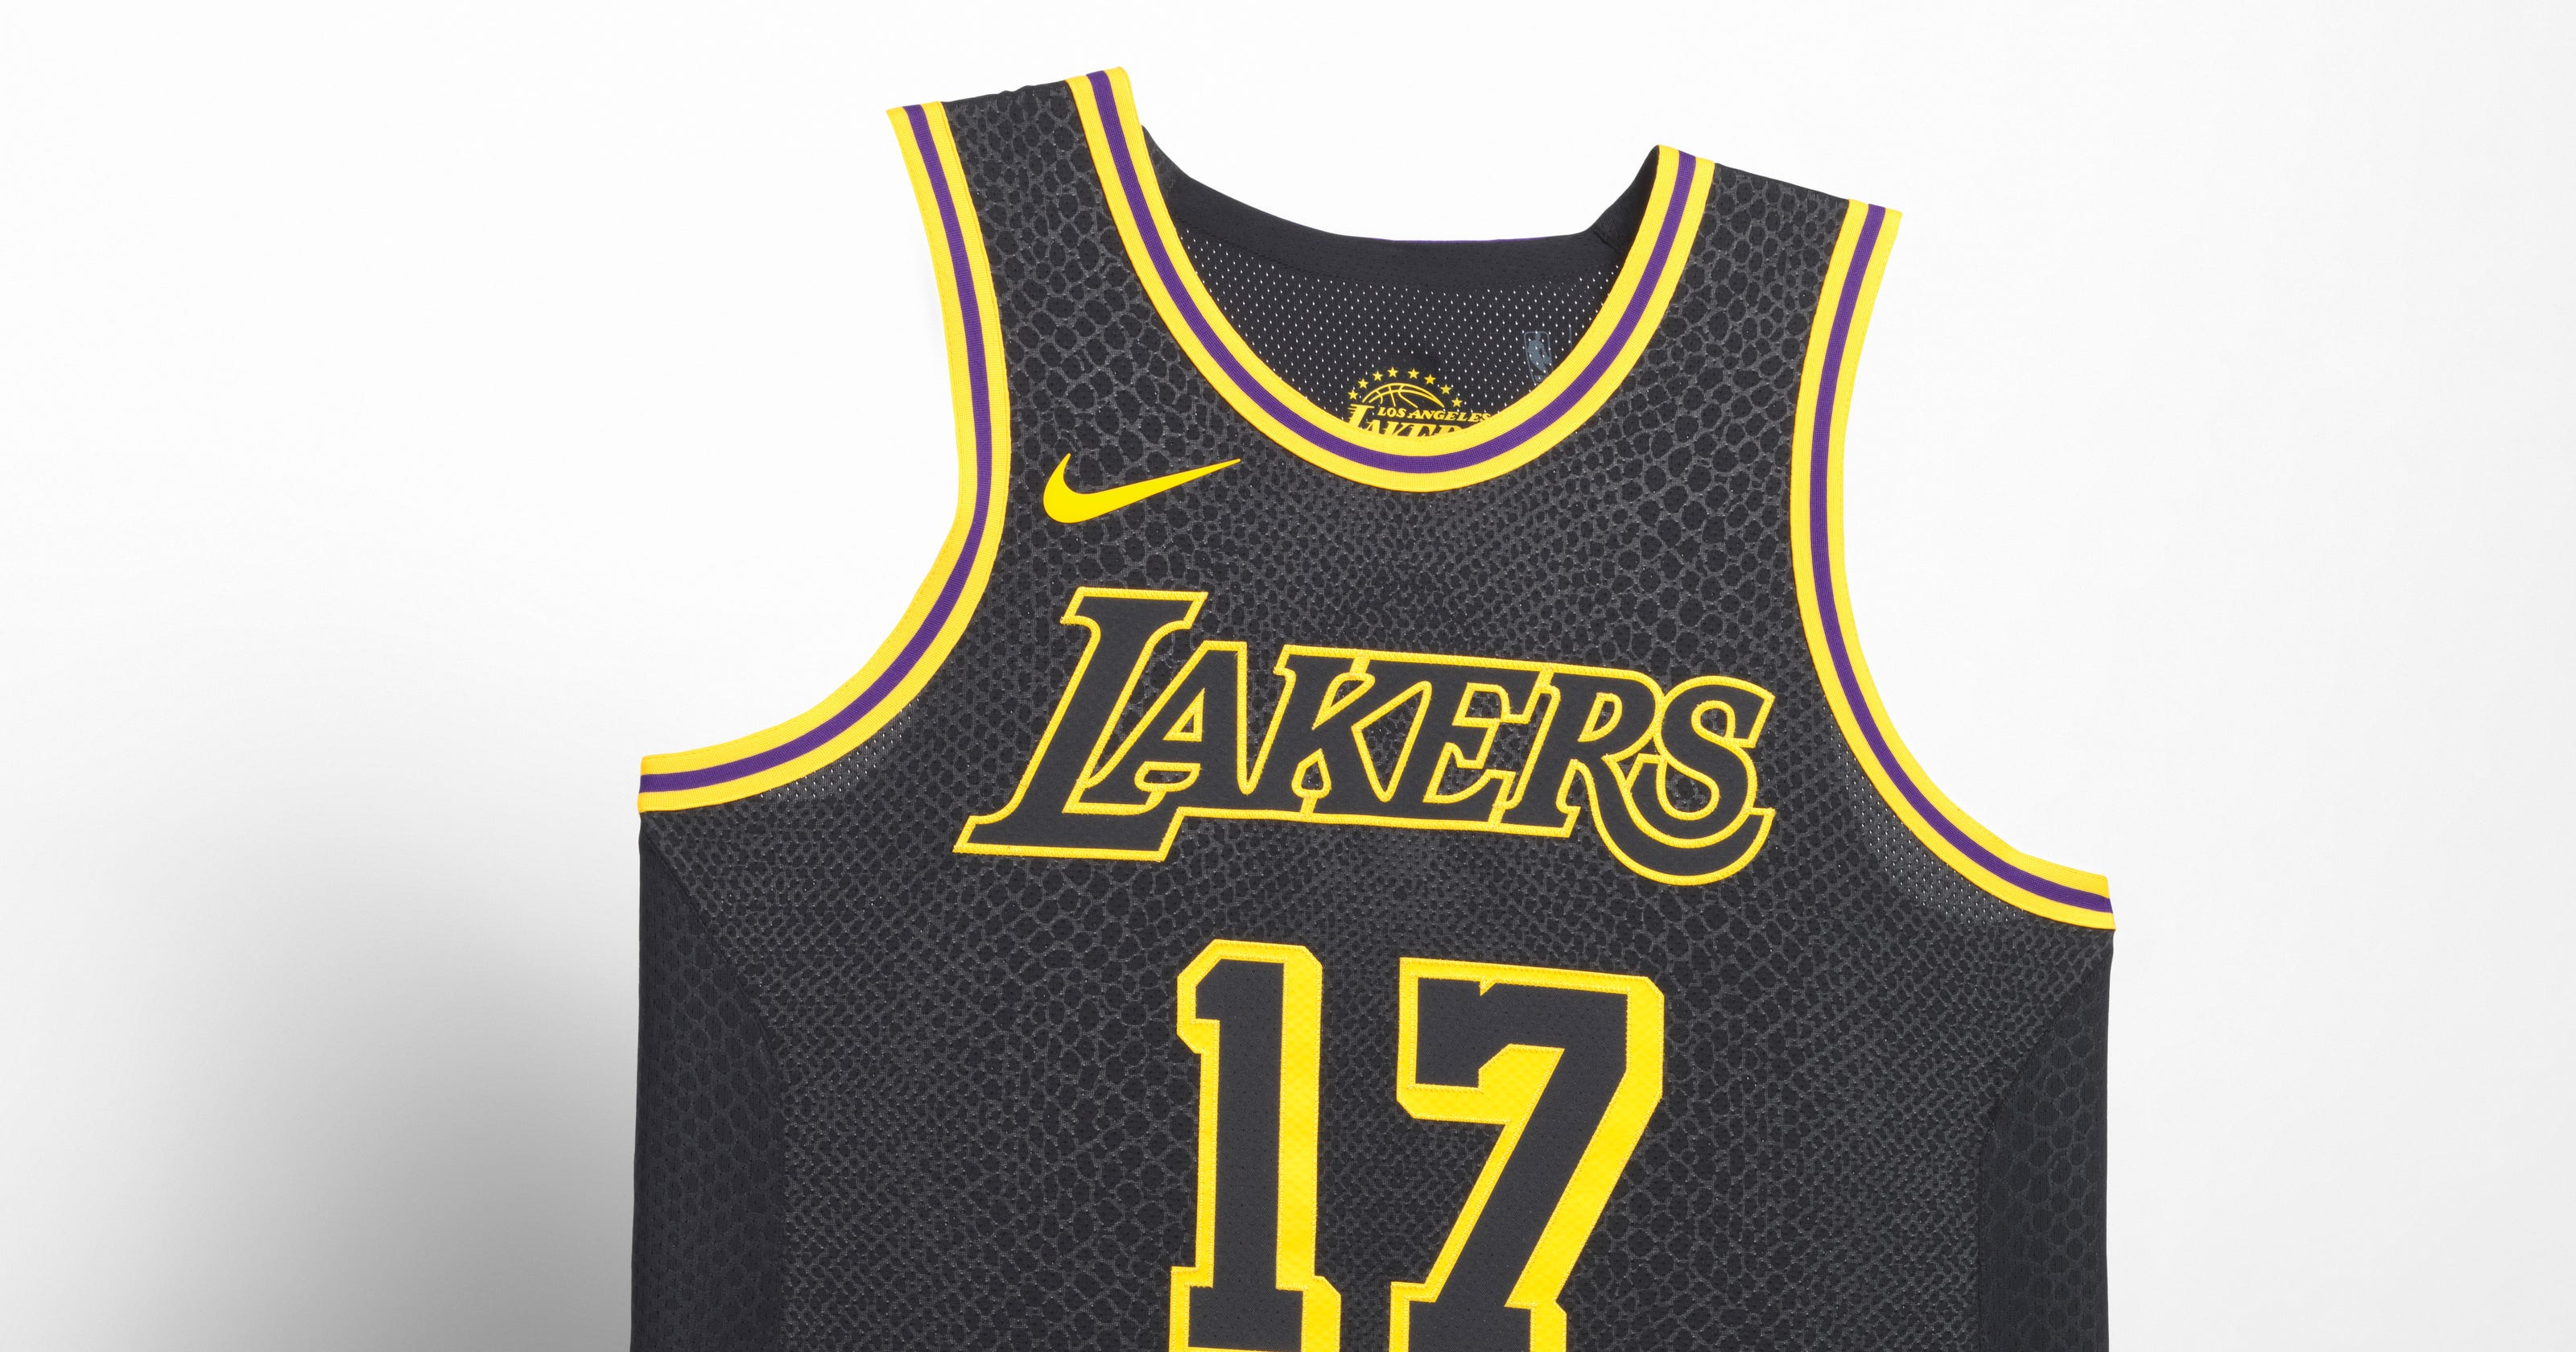 6a47a298b Nike NBA City Edition uniforms  The story behind the design process